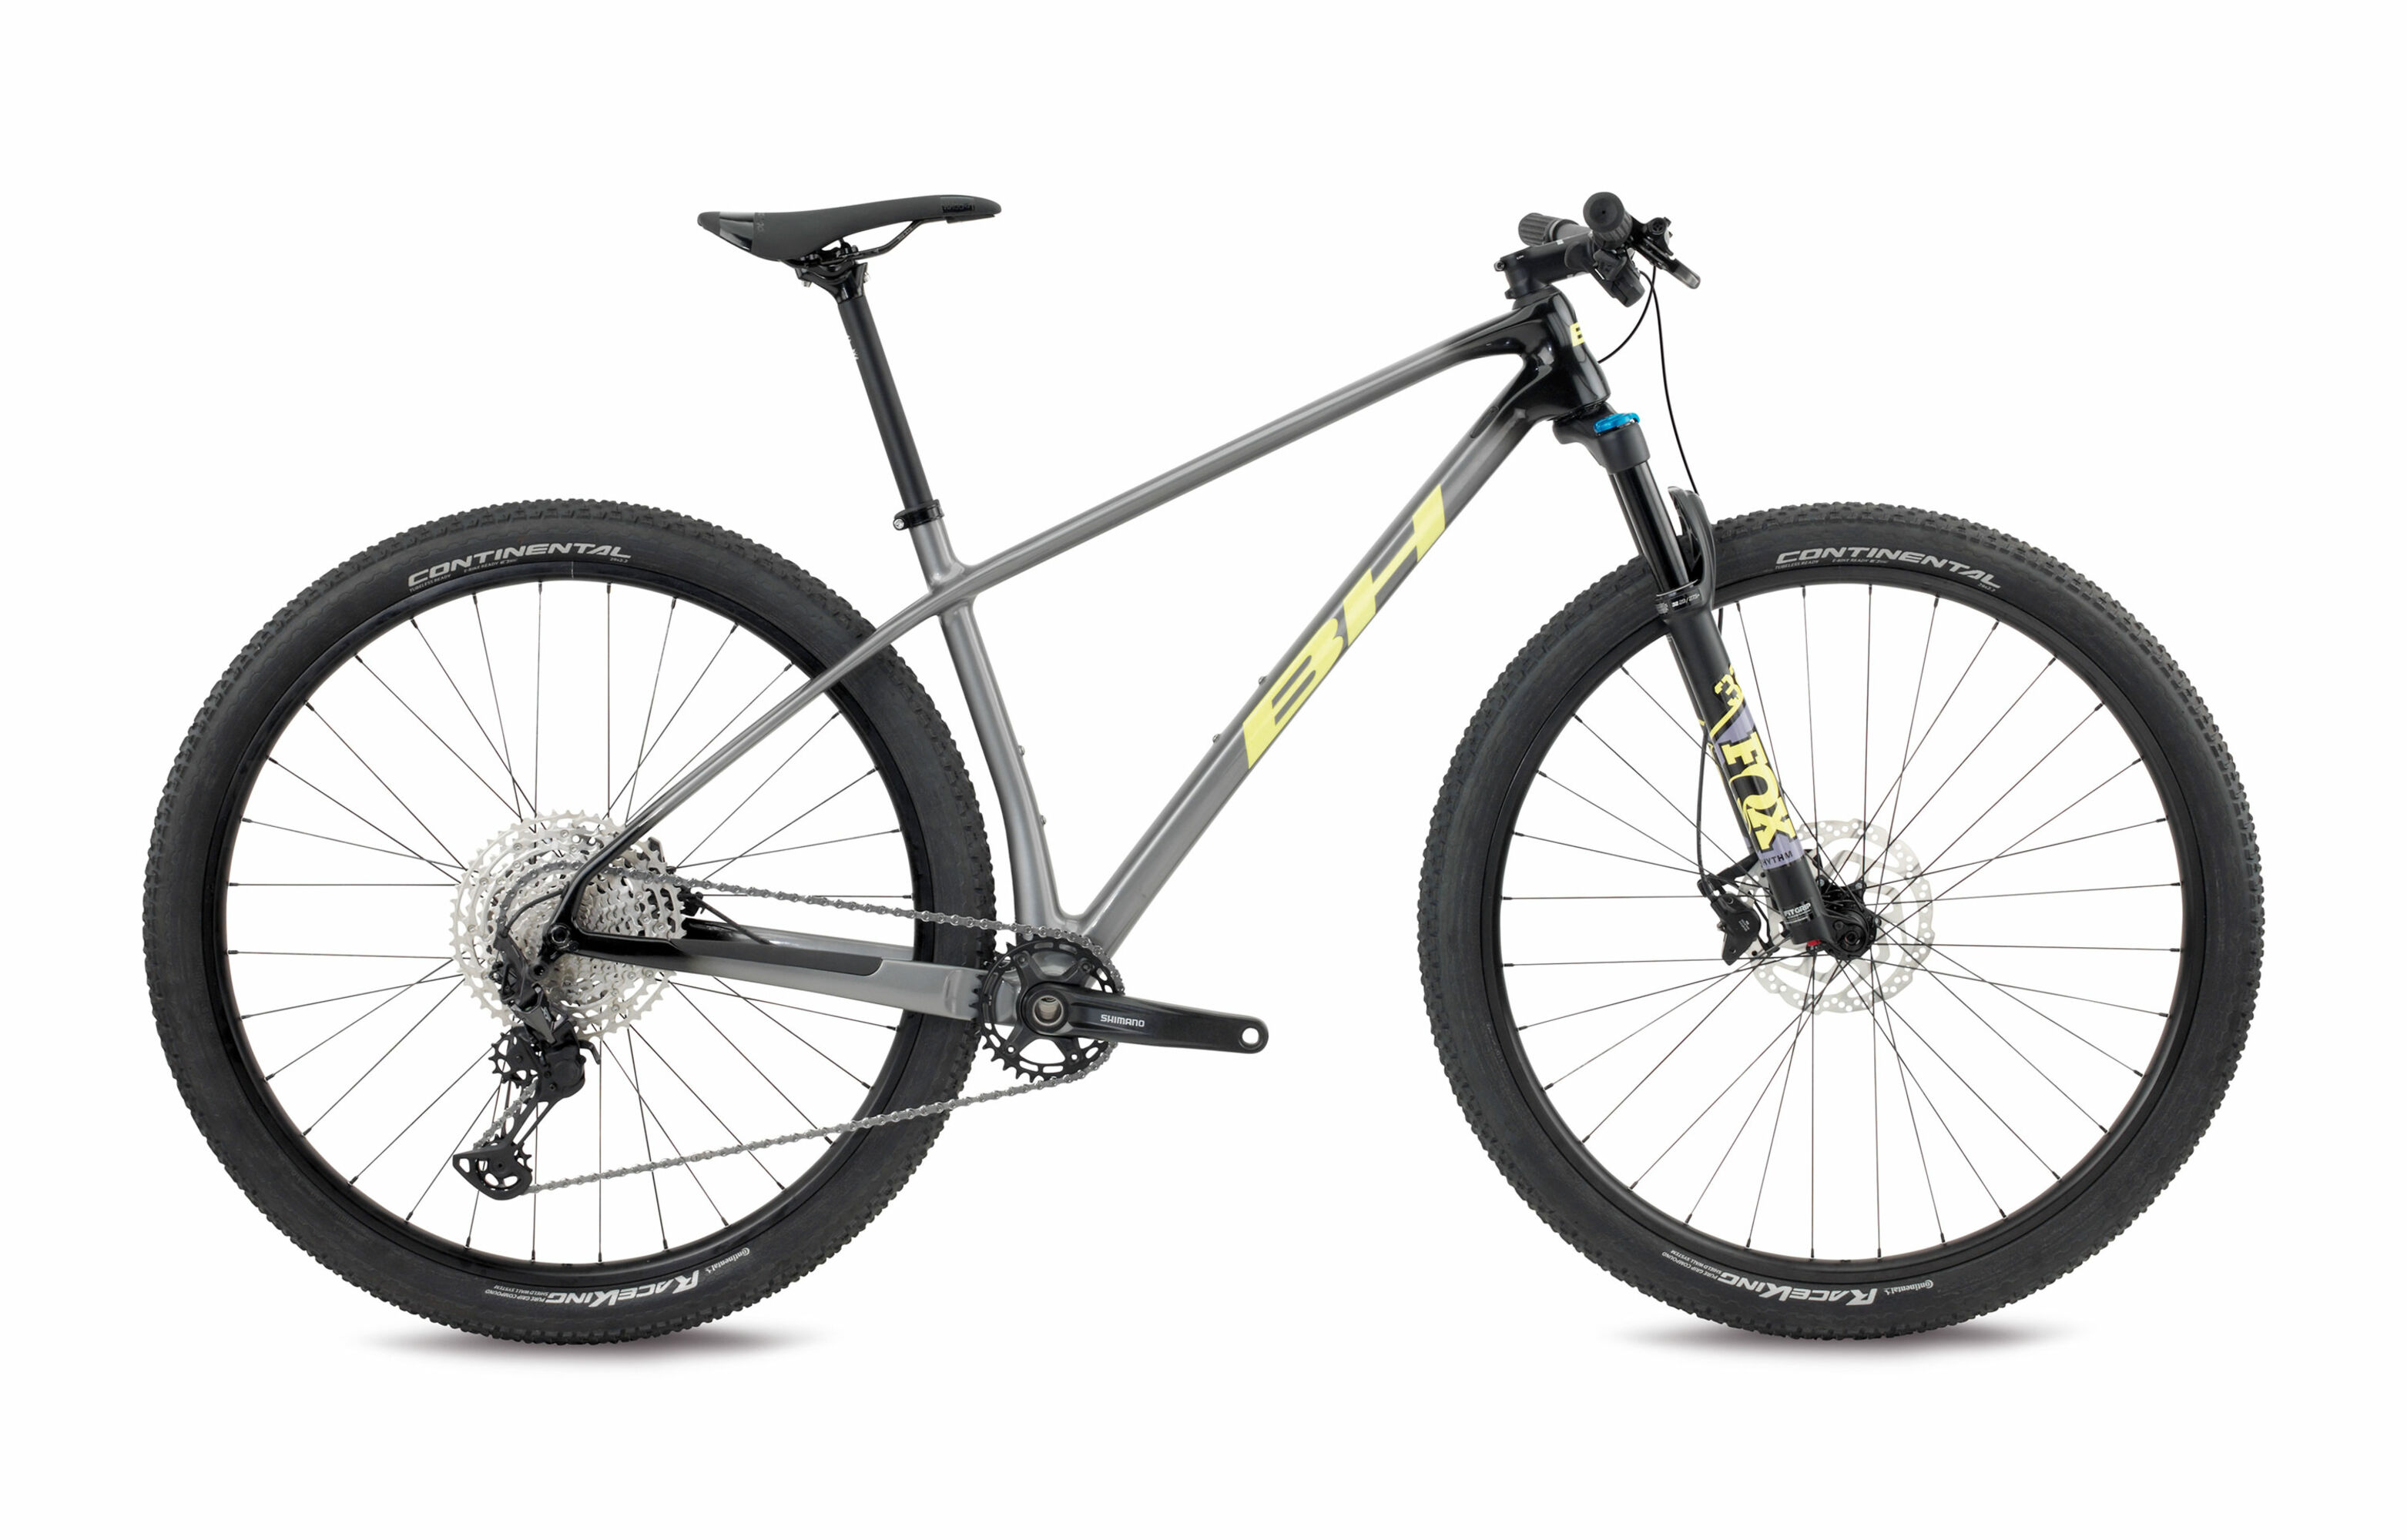 ULTIMATE RC 7.5 - BH Bikes